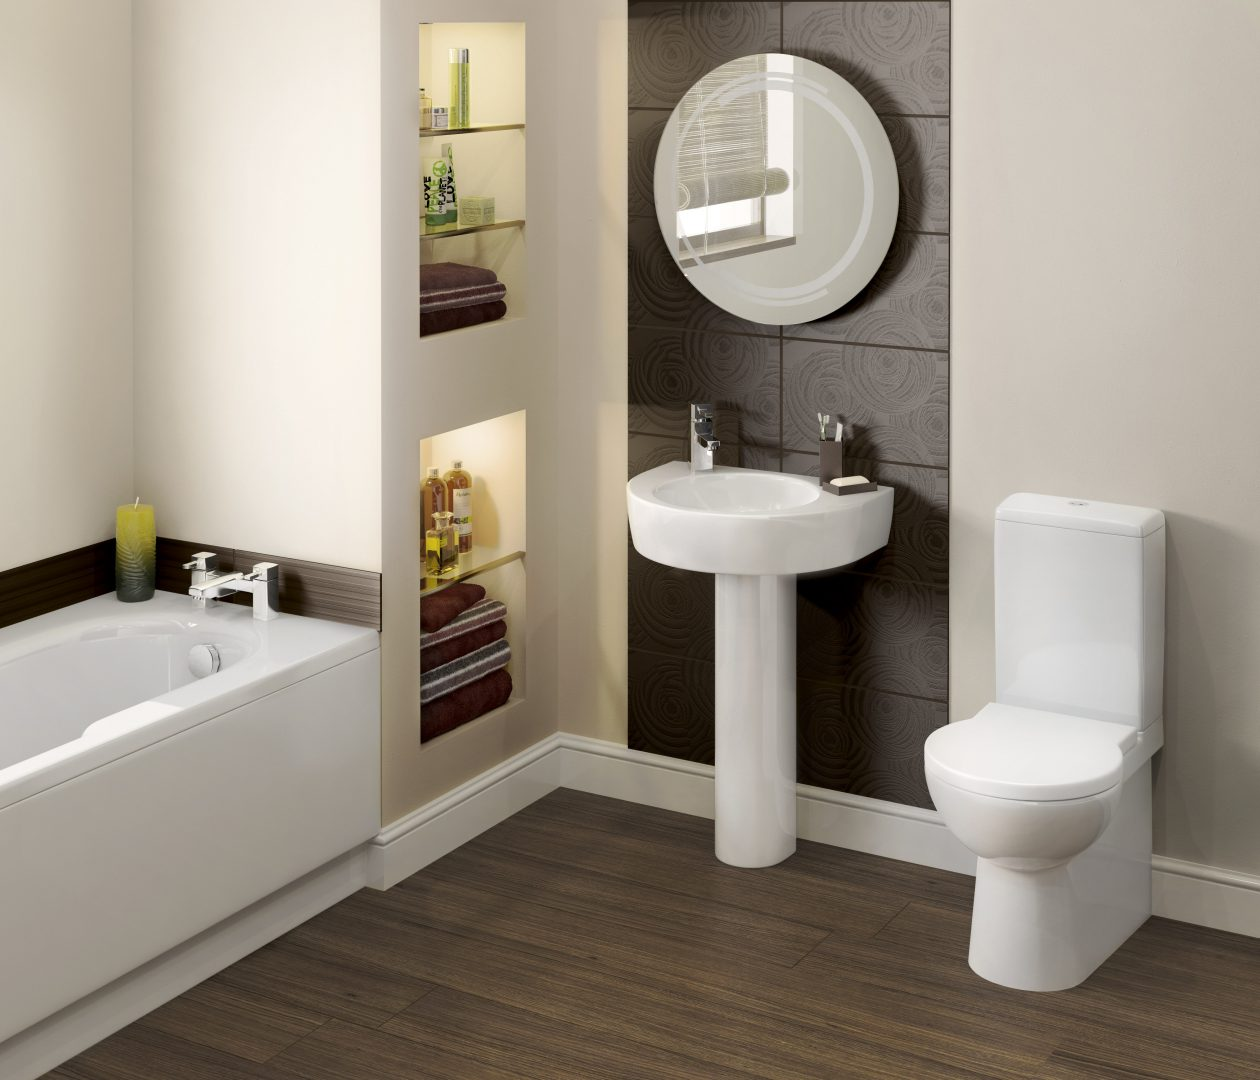 Decorar Un Baño Feng Shui:Small Bathroom Design Ideas